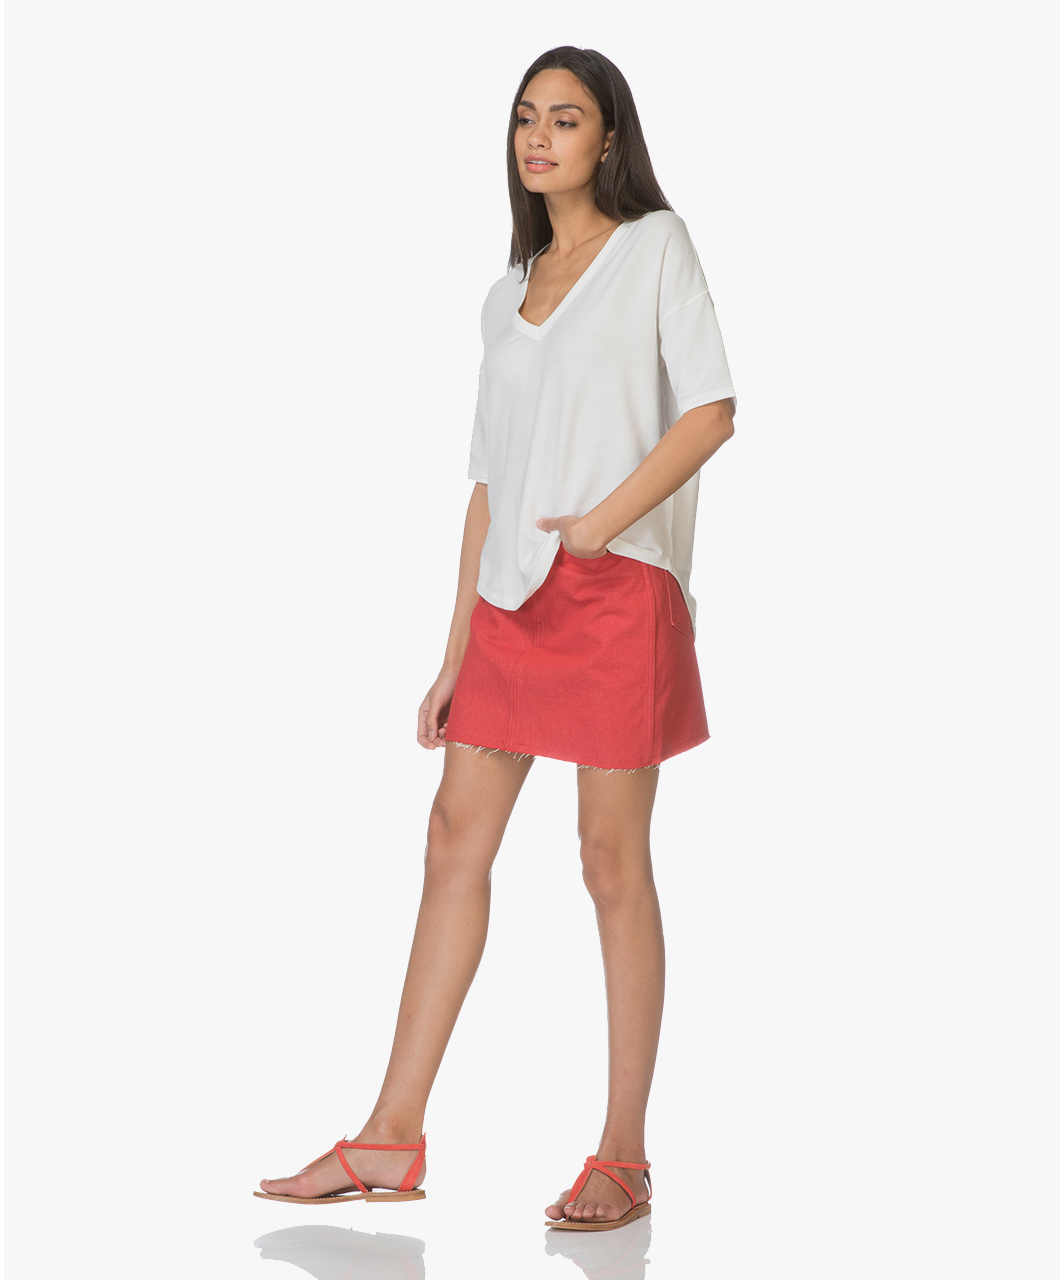 14592825a0 Rag & Bone / Jean Moss Denim Skirt - Bull Red - Rag & Bone / Jean